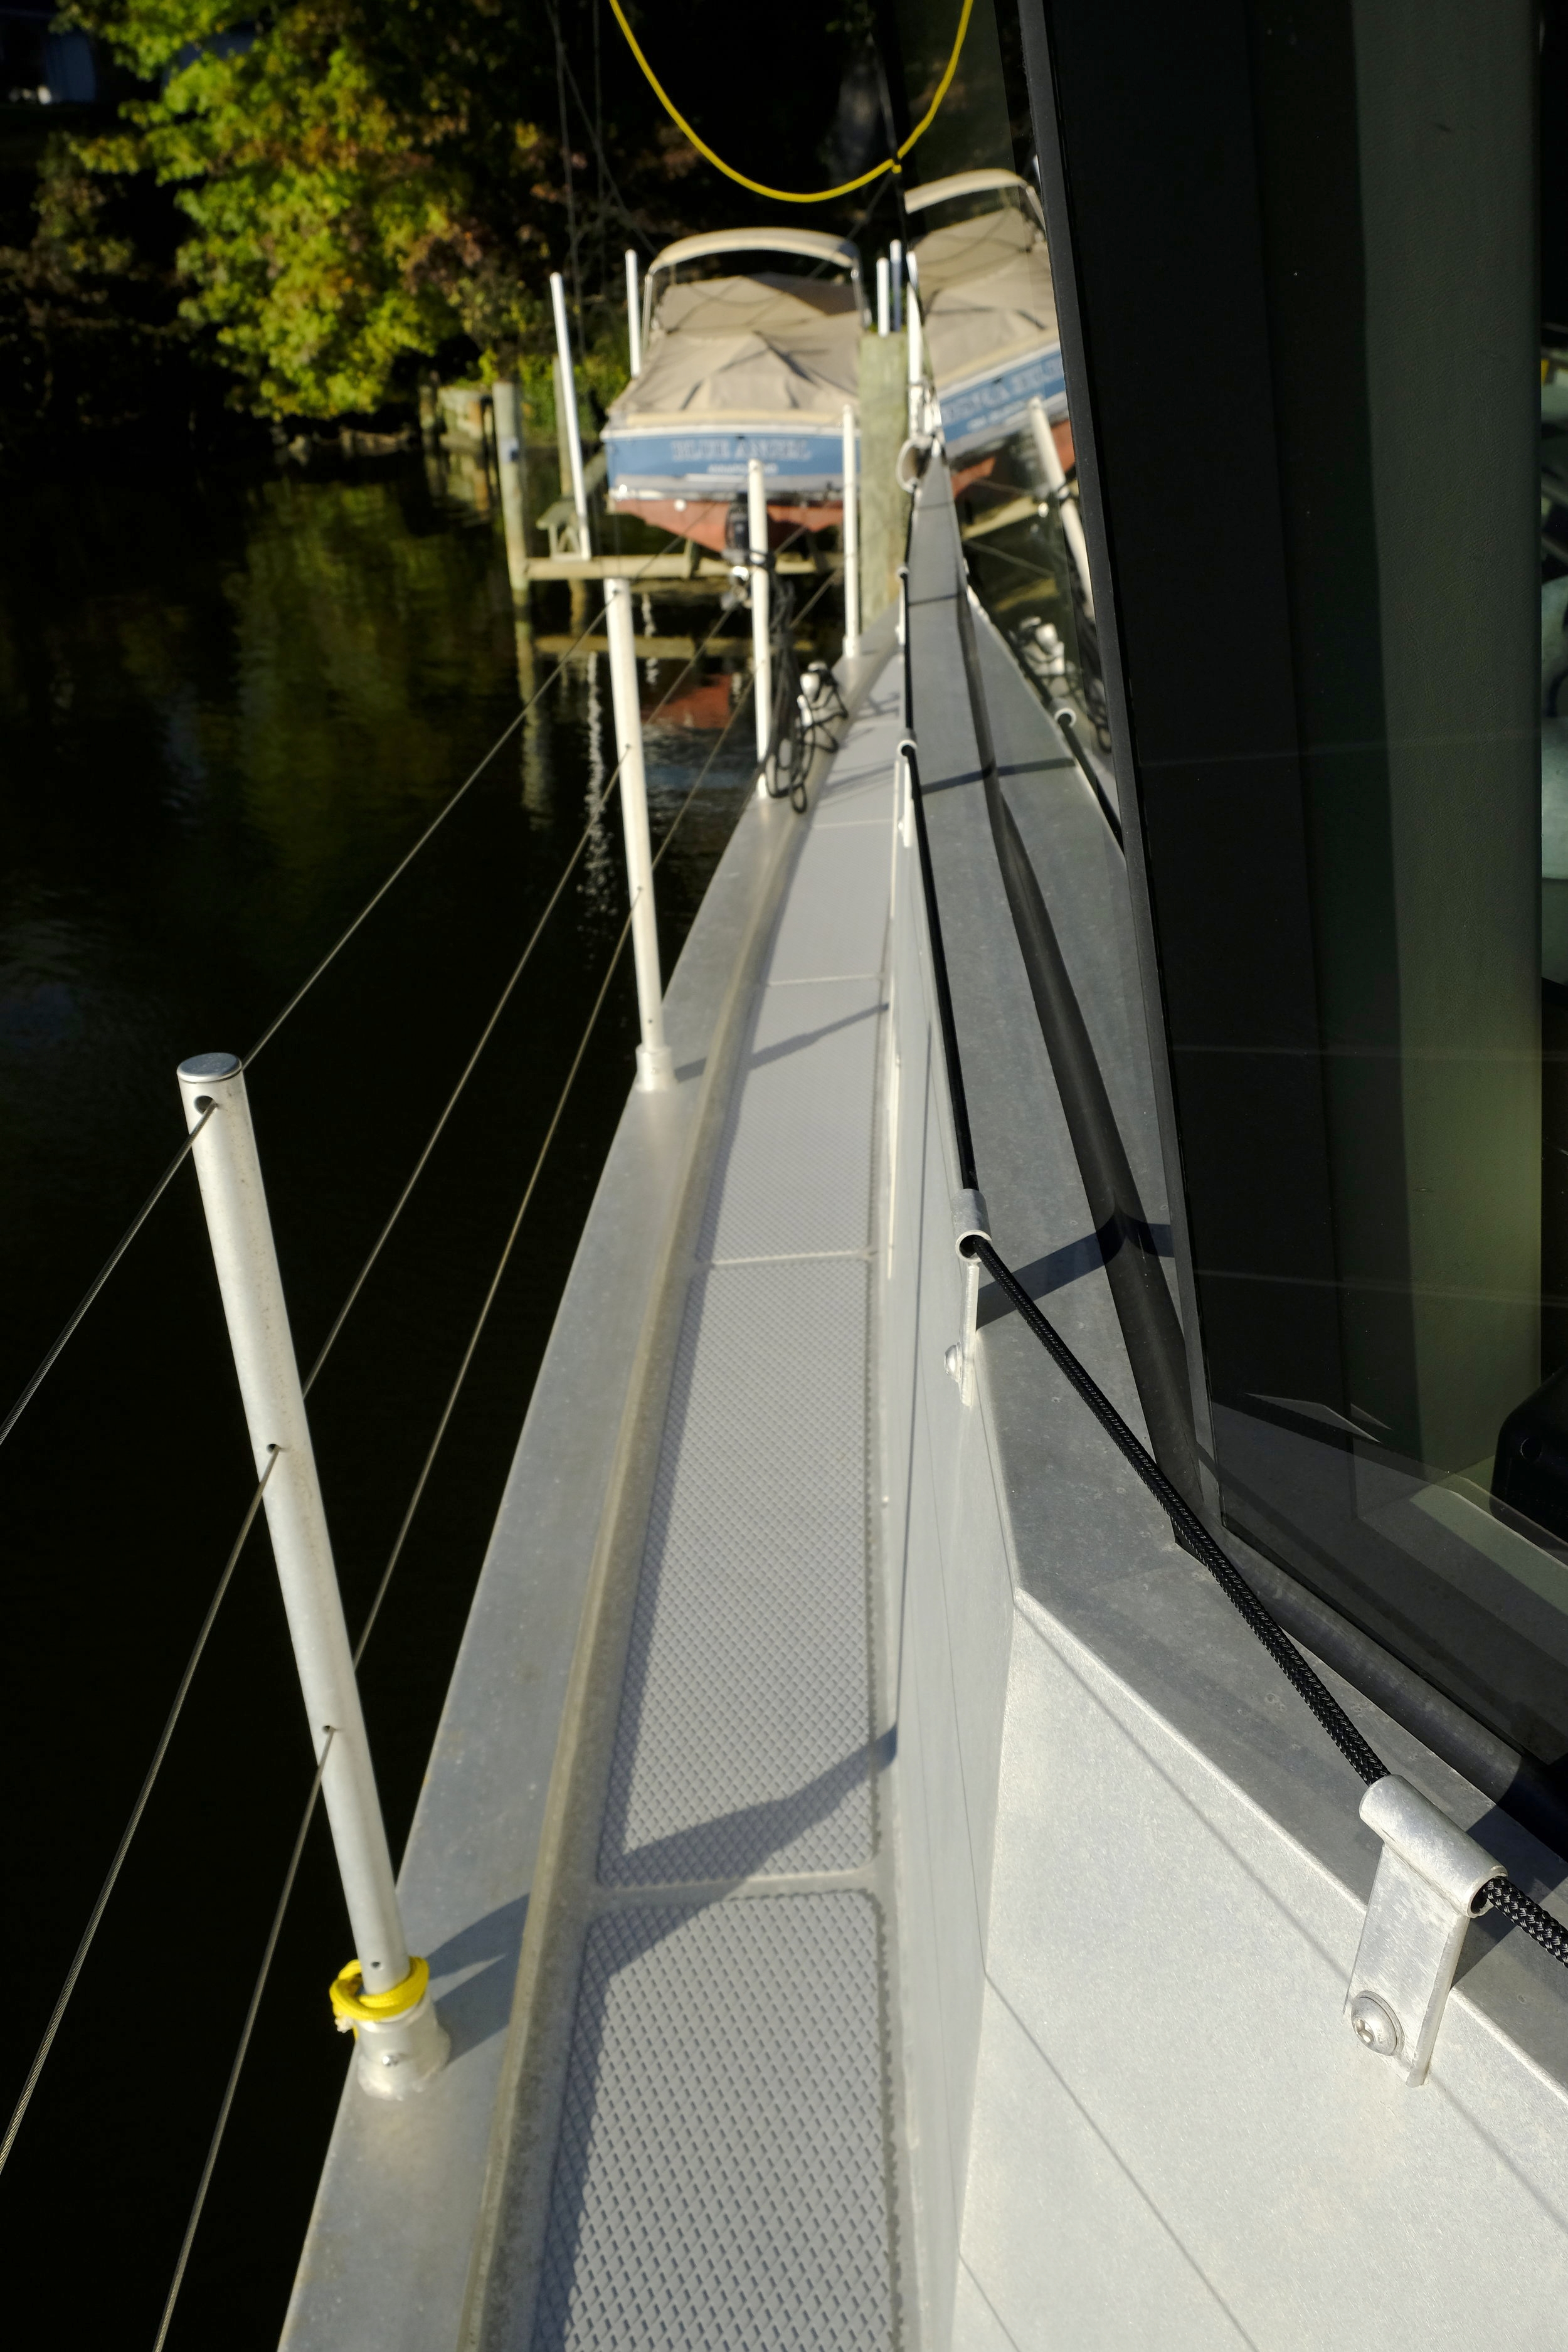 Spectra line makes a great hand hold while moving along side decks. The line runs through brackets that attach using the threaded holes created for the boat's storm shutters.